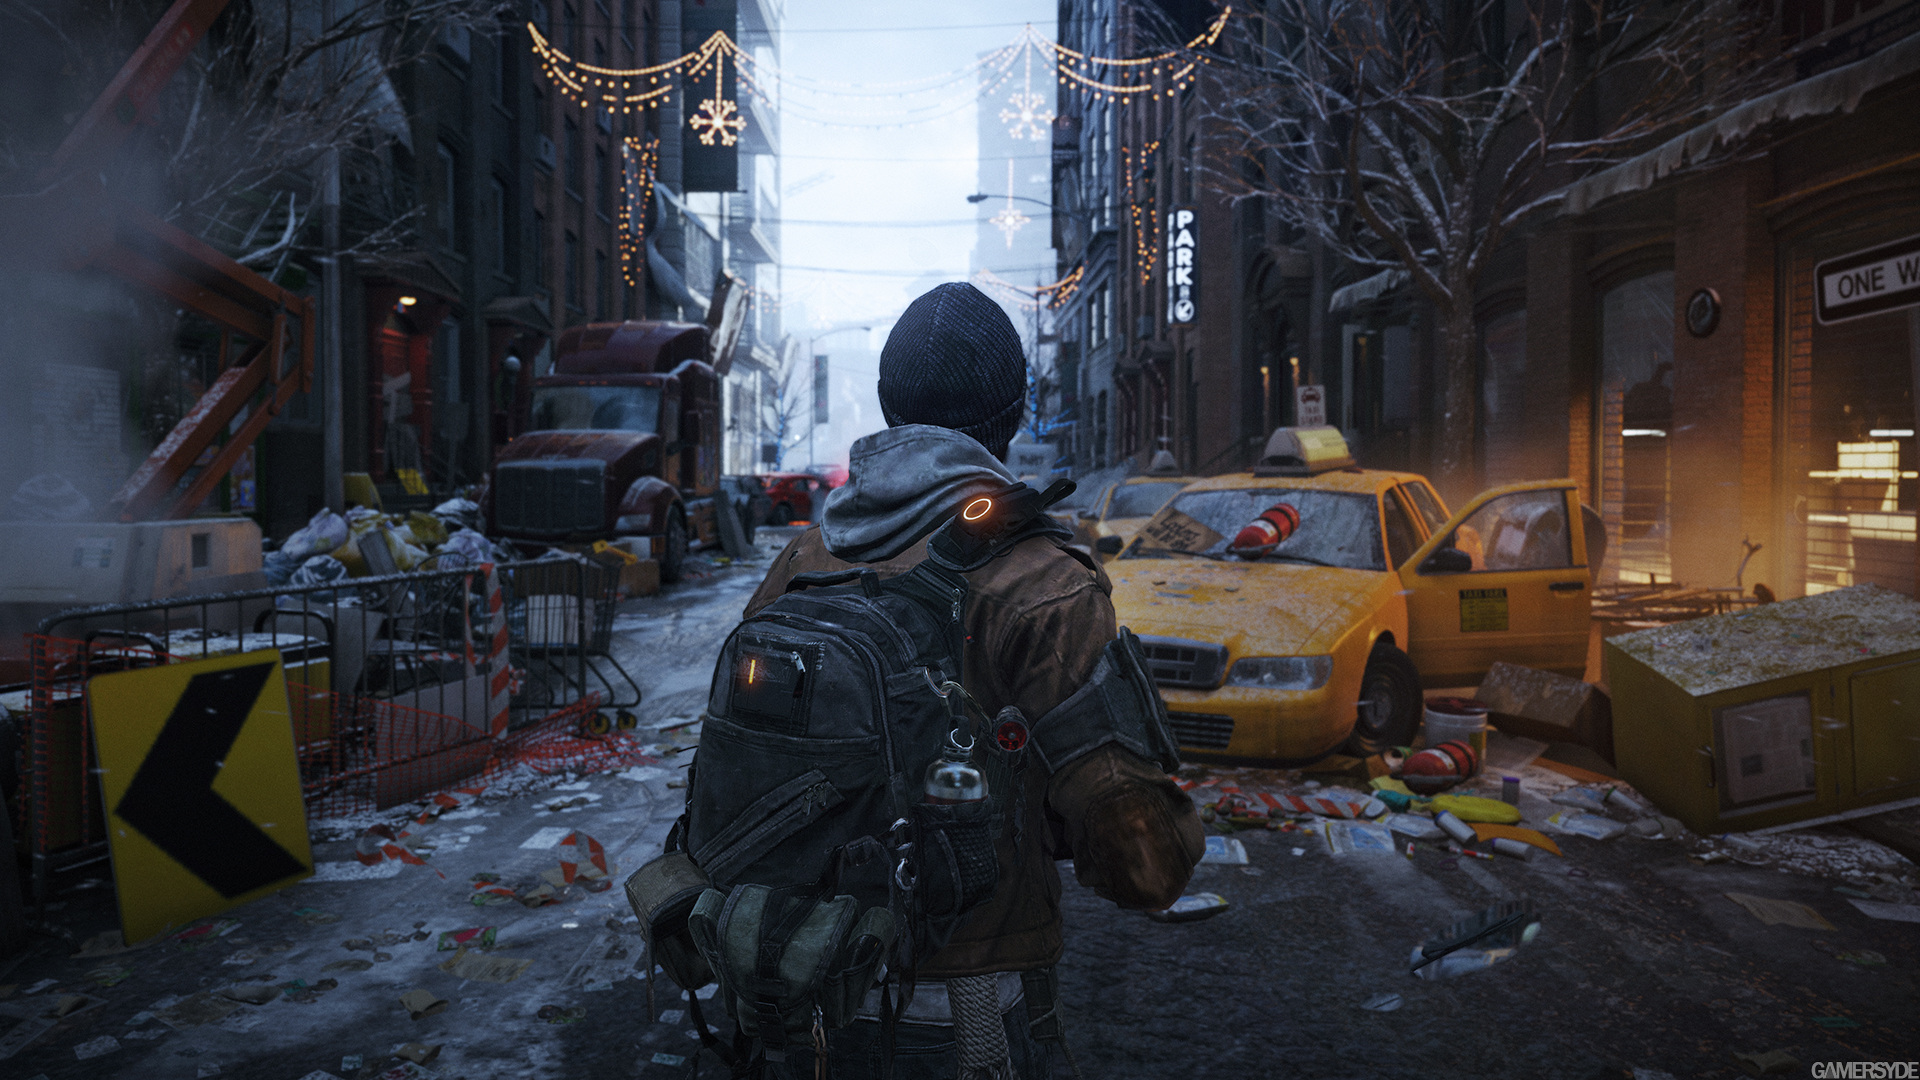 image_tom_clancy_s_the_division-22299-2751_0004